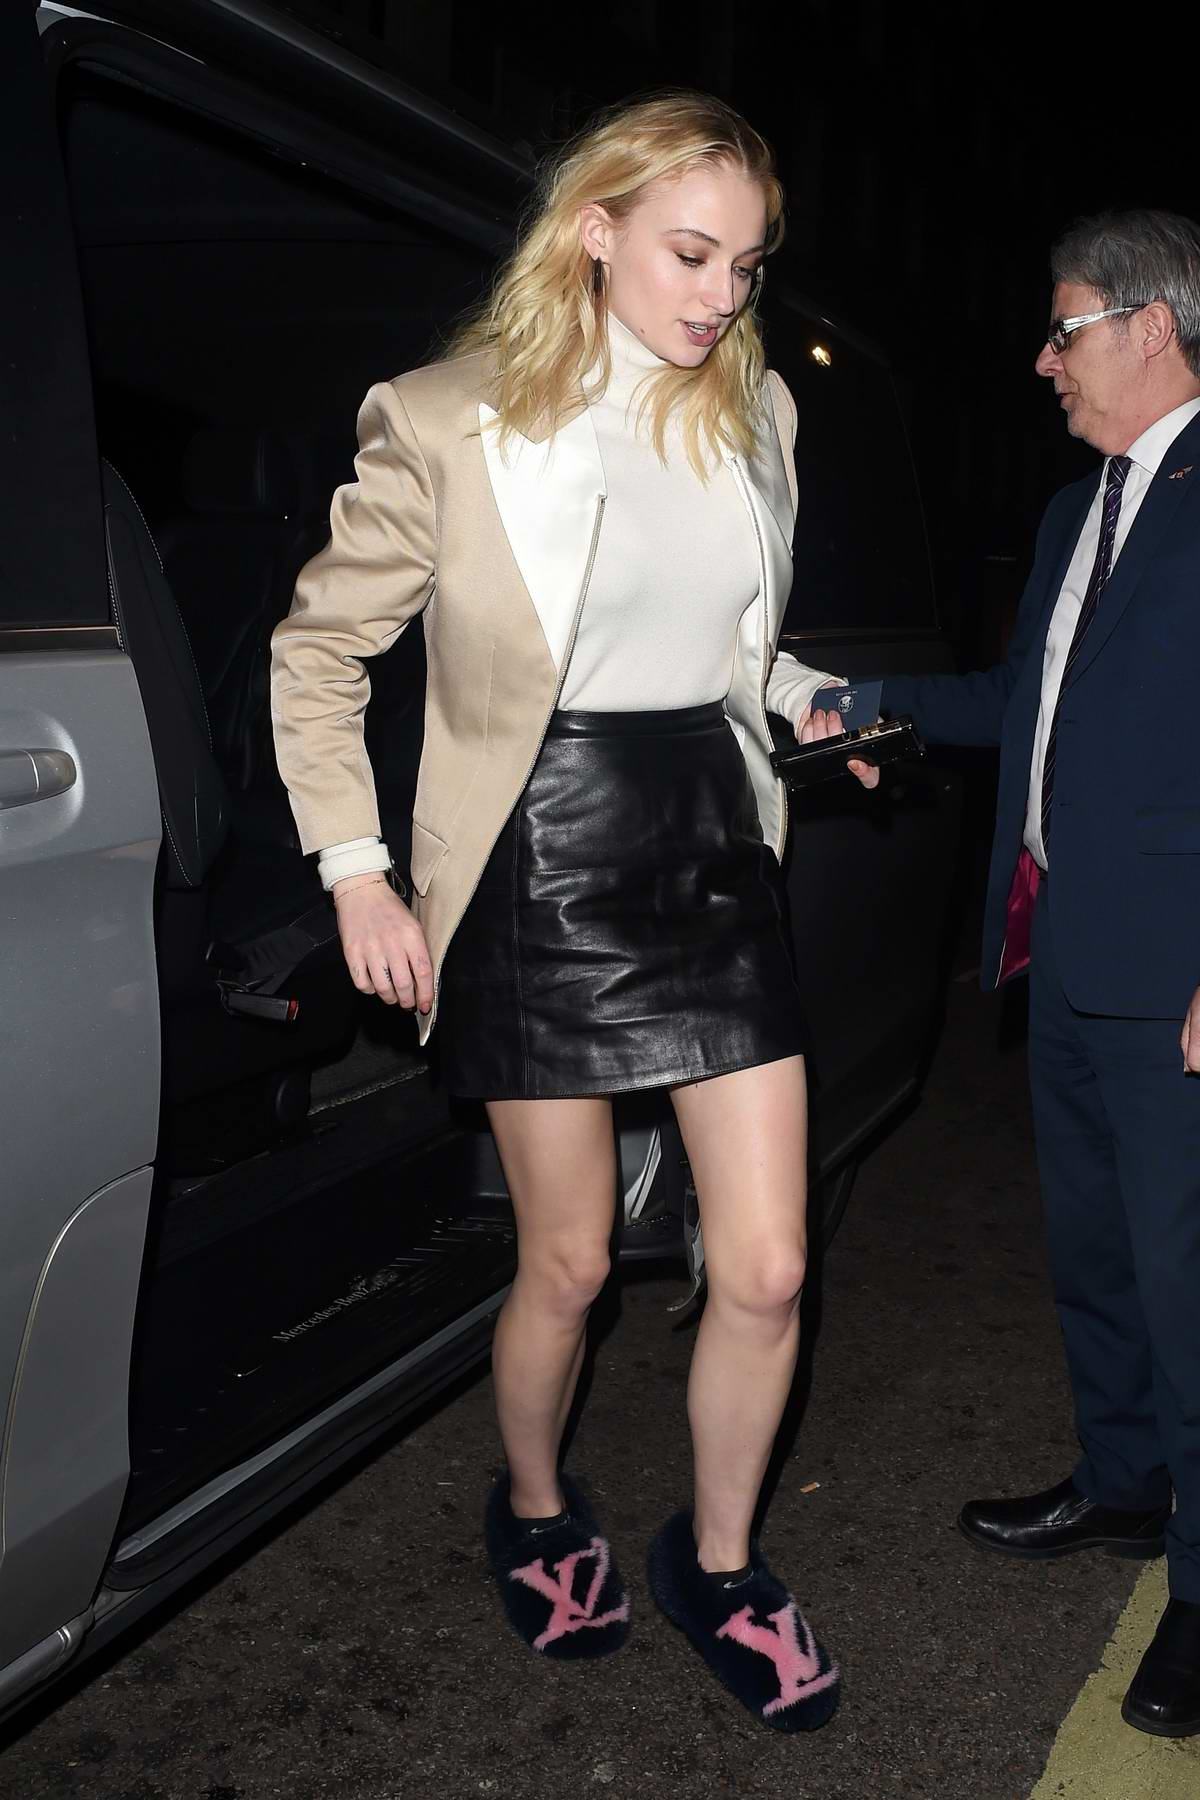 Sophie Turner spotted in a beige blazer, black leather mini-skirt and Louis Vuitton slippers as she leaves Corinthia Hotel in London, UK